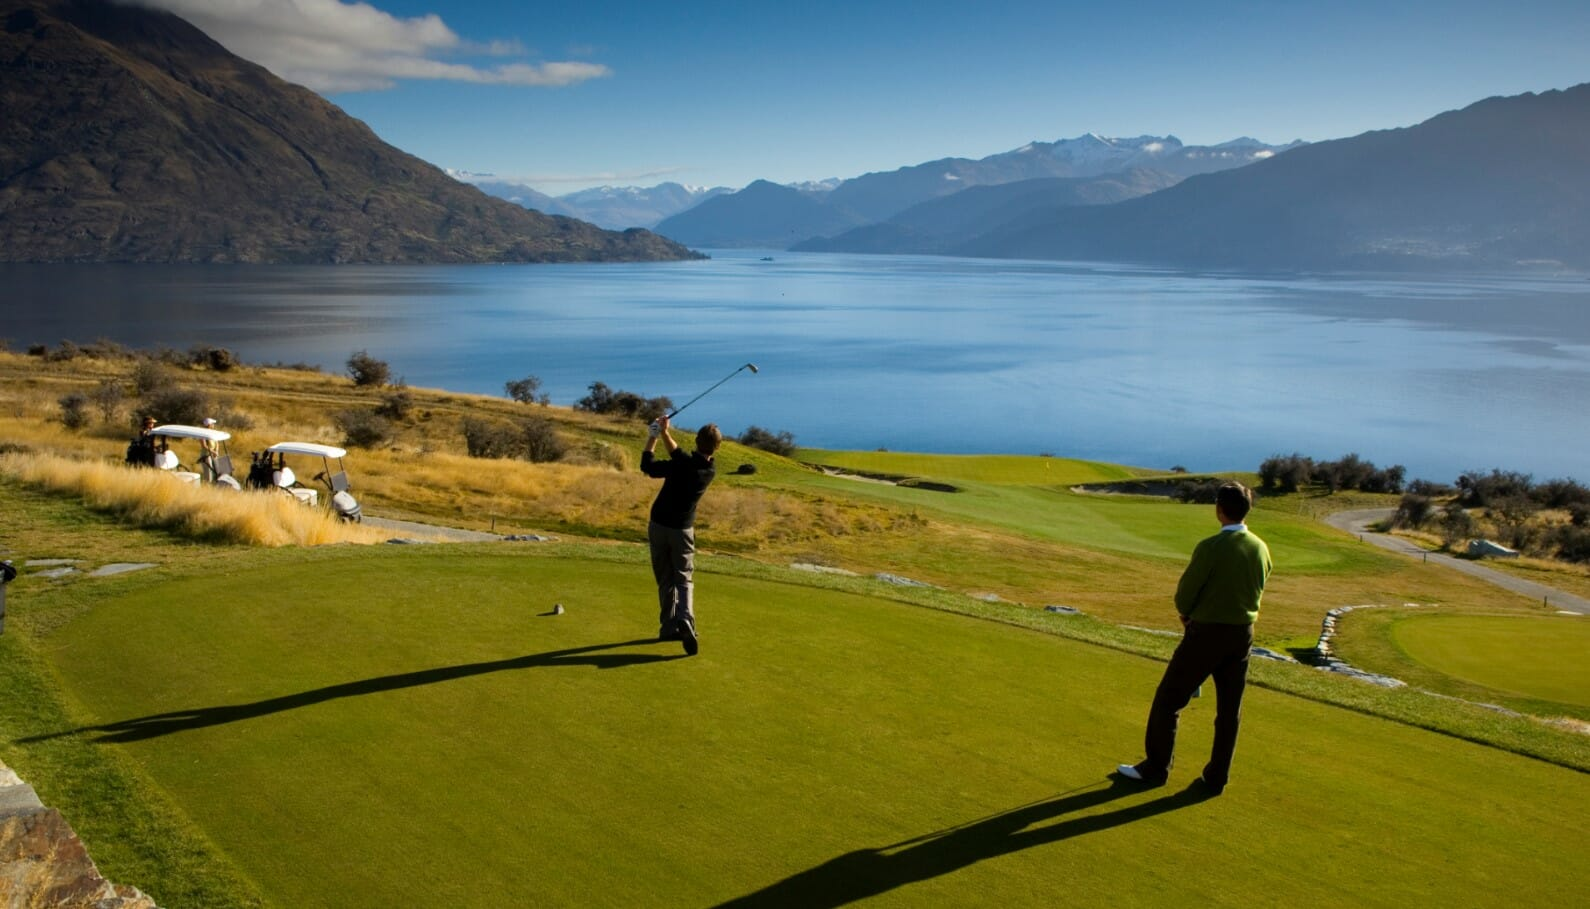 Image displaying travelling golfers teeing off at Jack's Point Golf Course, Queenstown